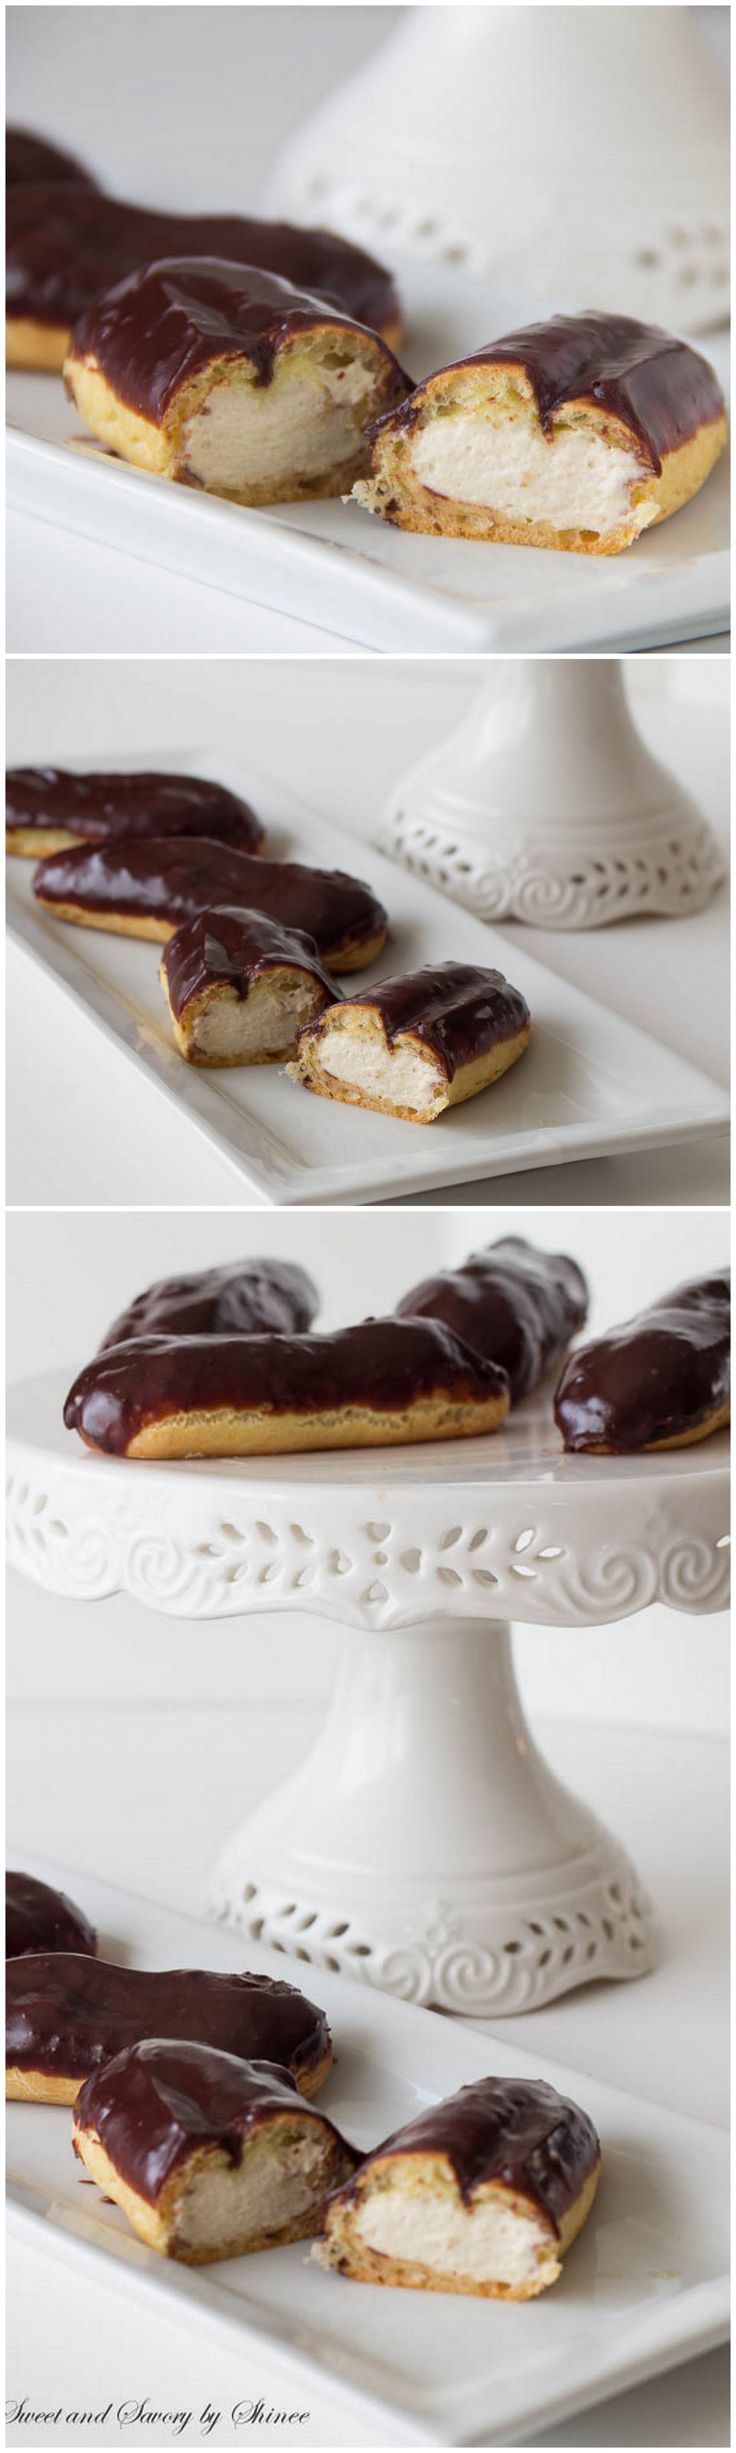 Best 25+ Chocolate eclair recipe ideas only on Pinterest ...